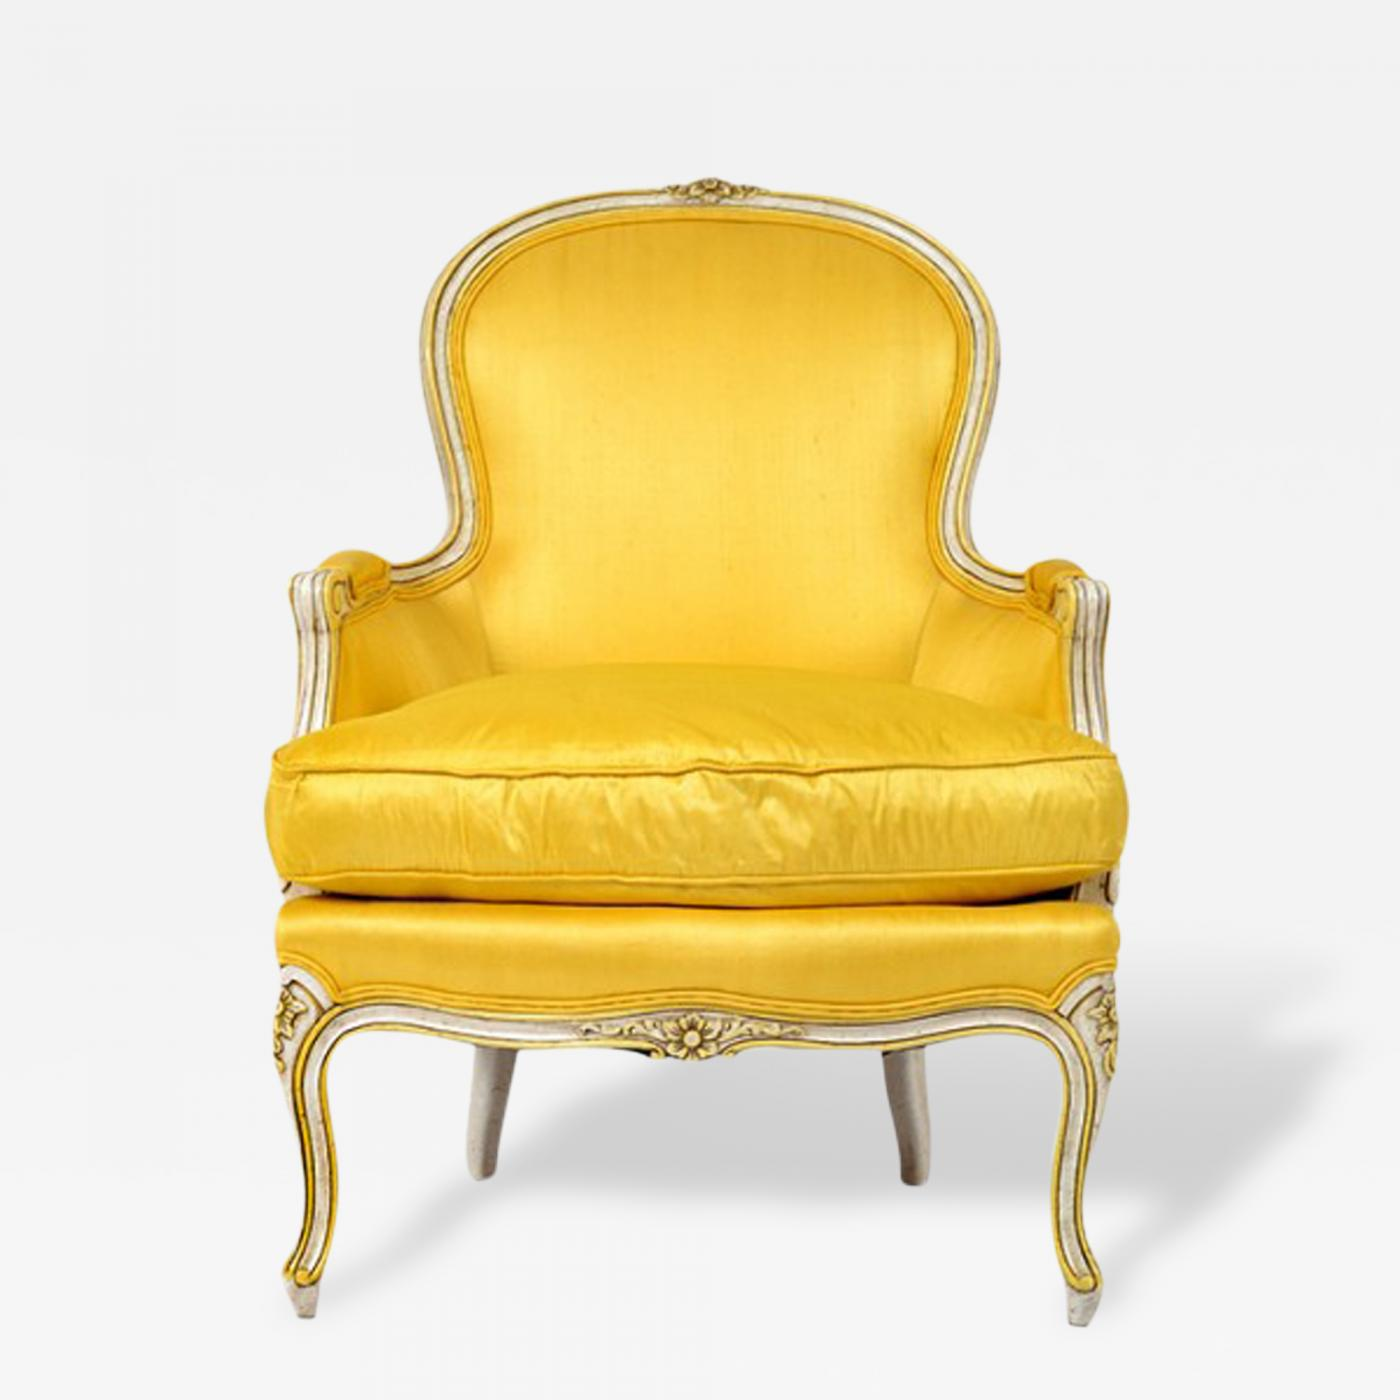 Henredon 1950 39 s henredon bergere chair louis xv style for 1950s chair styles